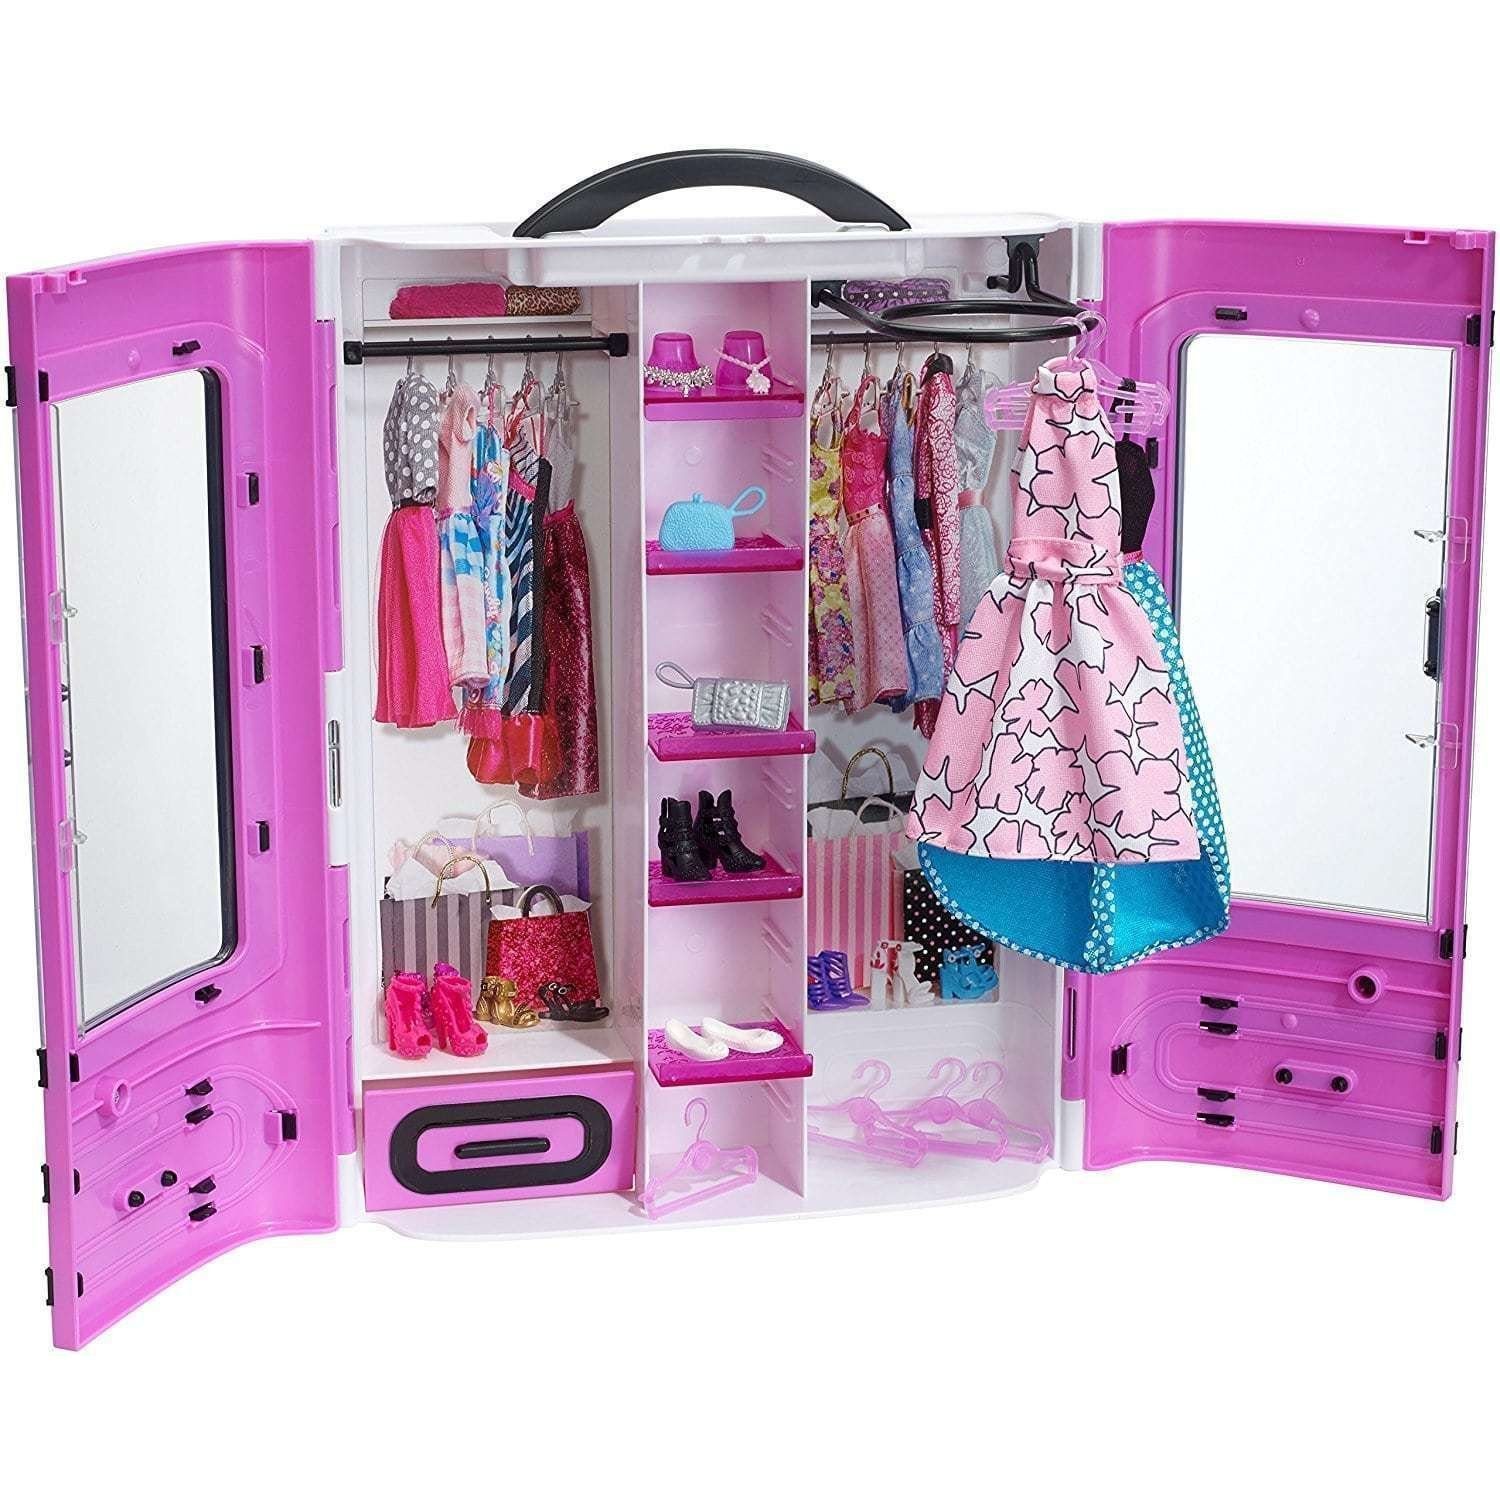 Barbie fashionista ultimate wardrobe